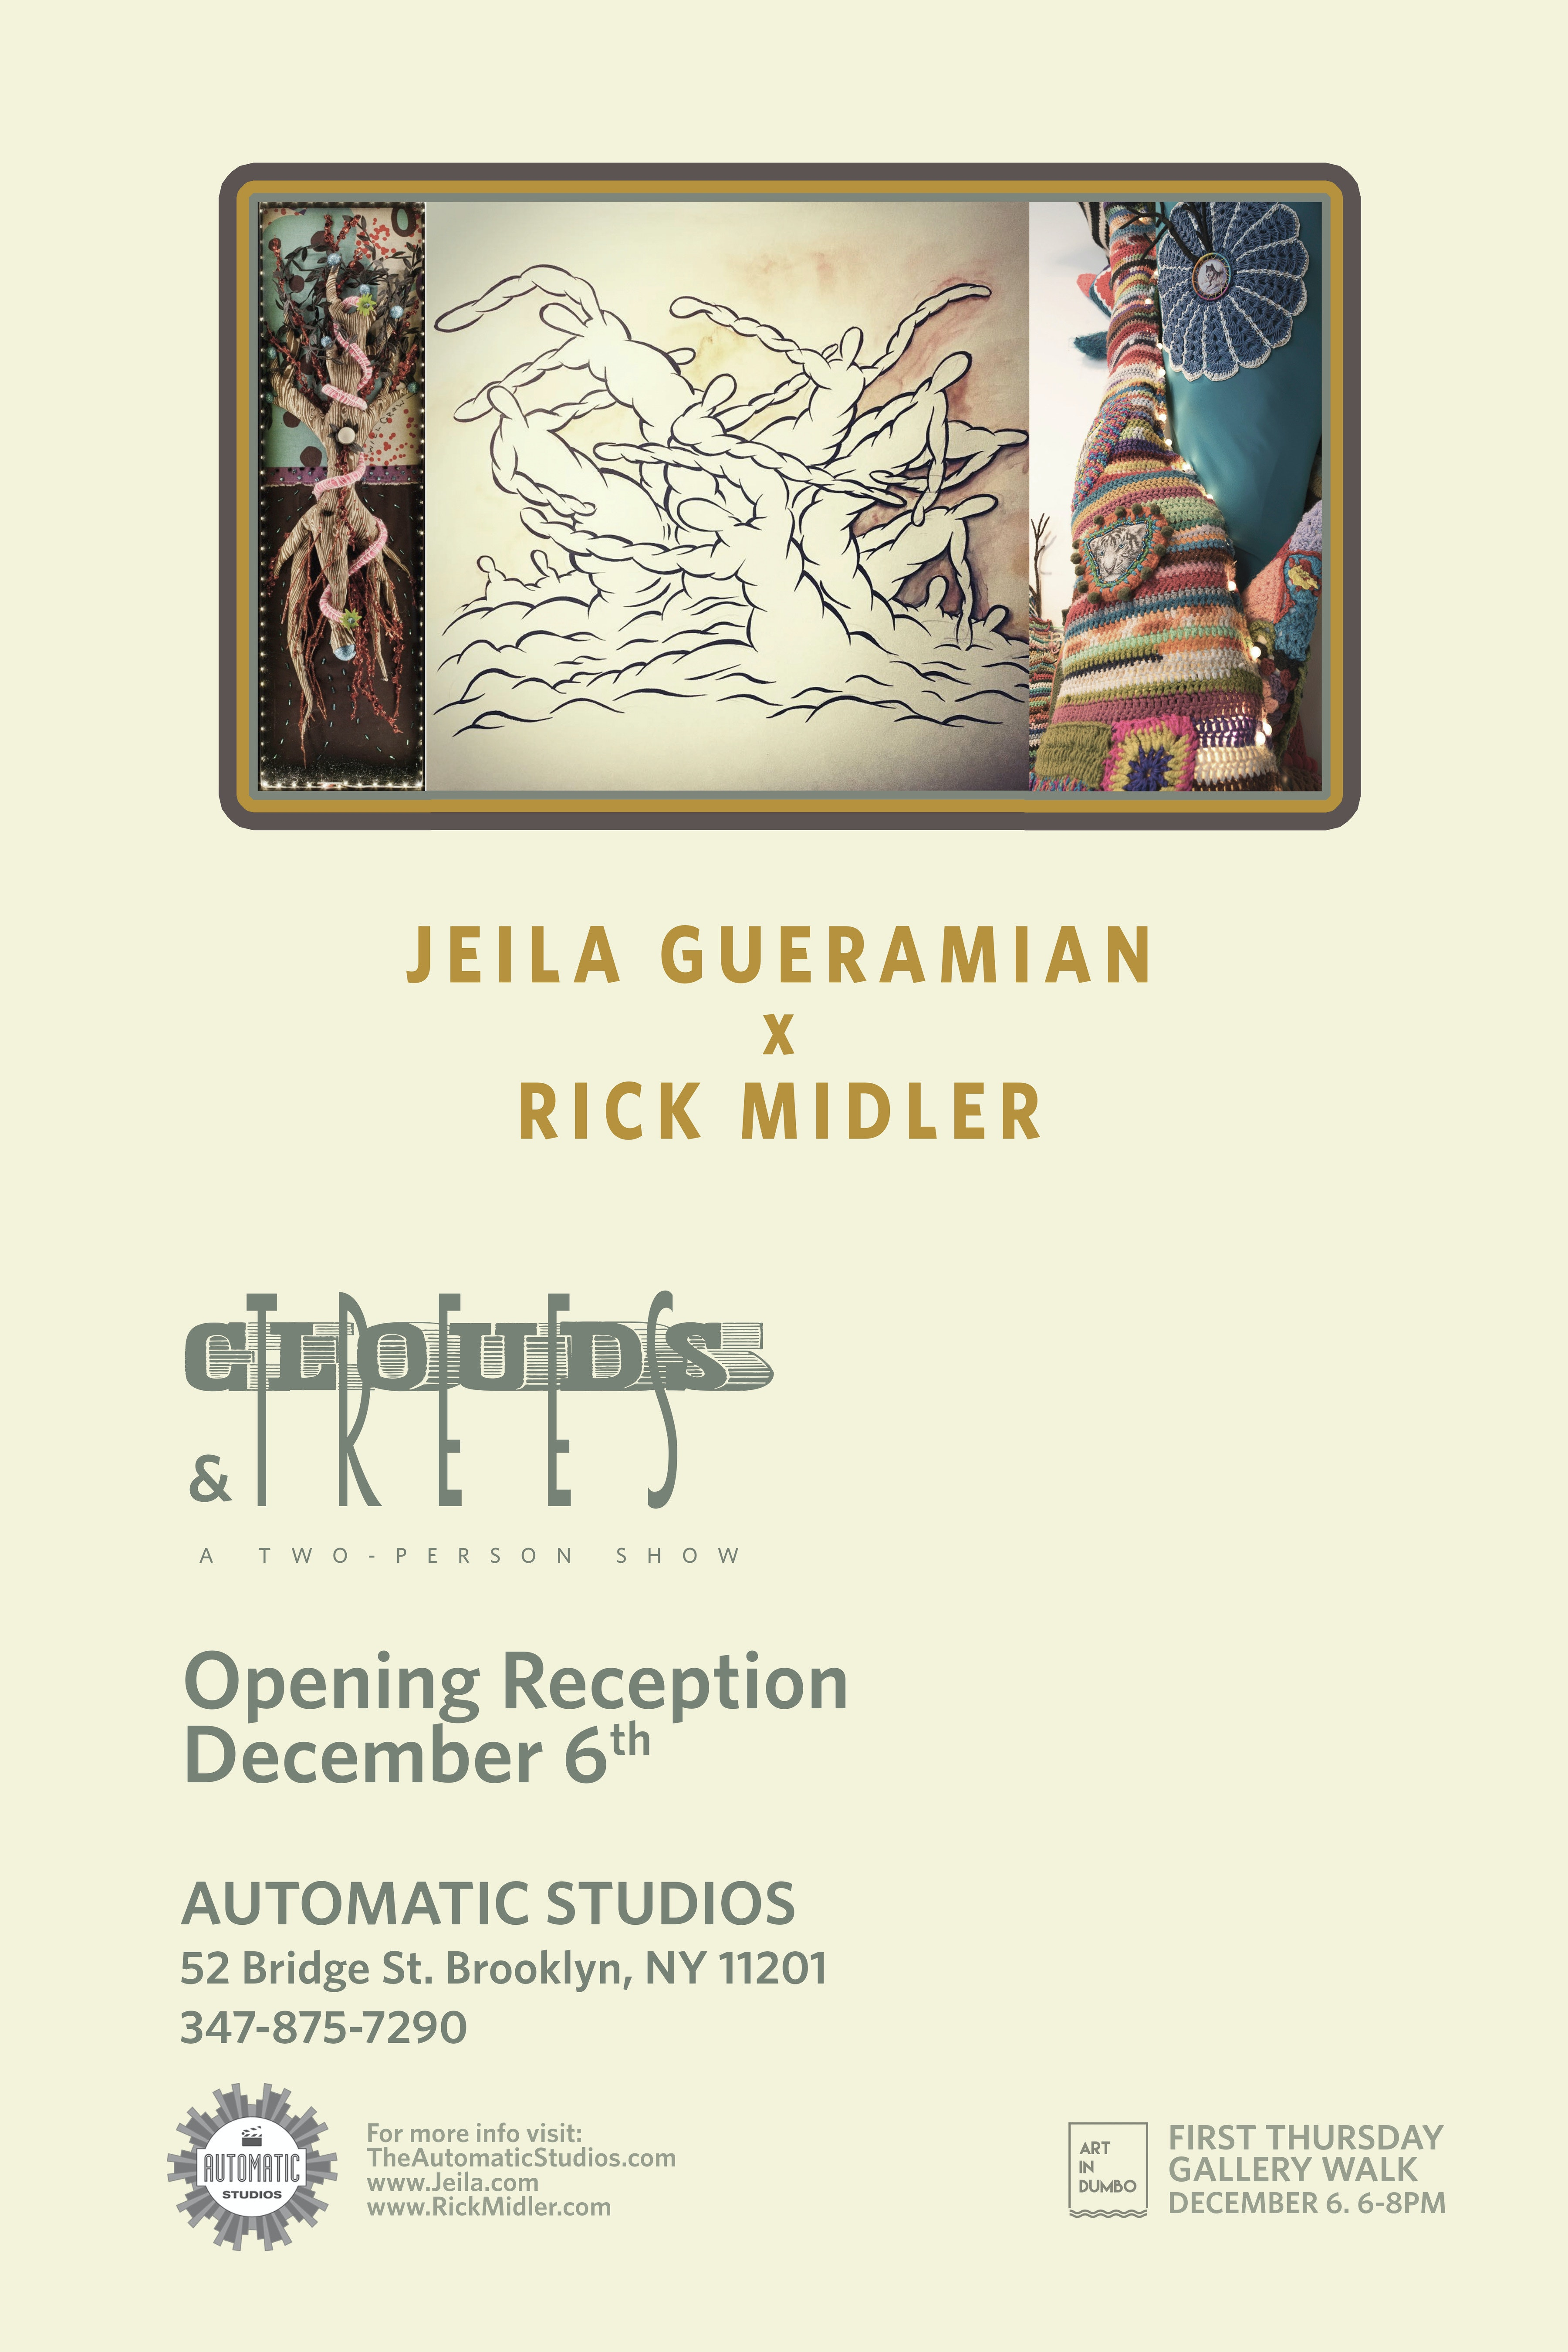 Jeila Gueramian & Rick Midler: Clouds & Trees